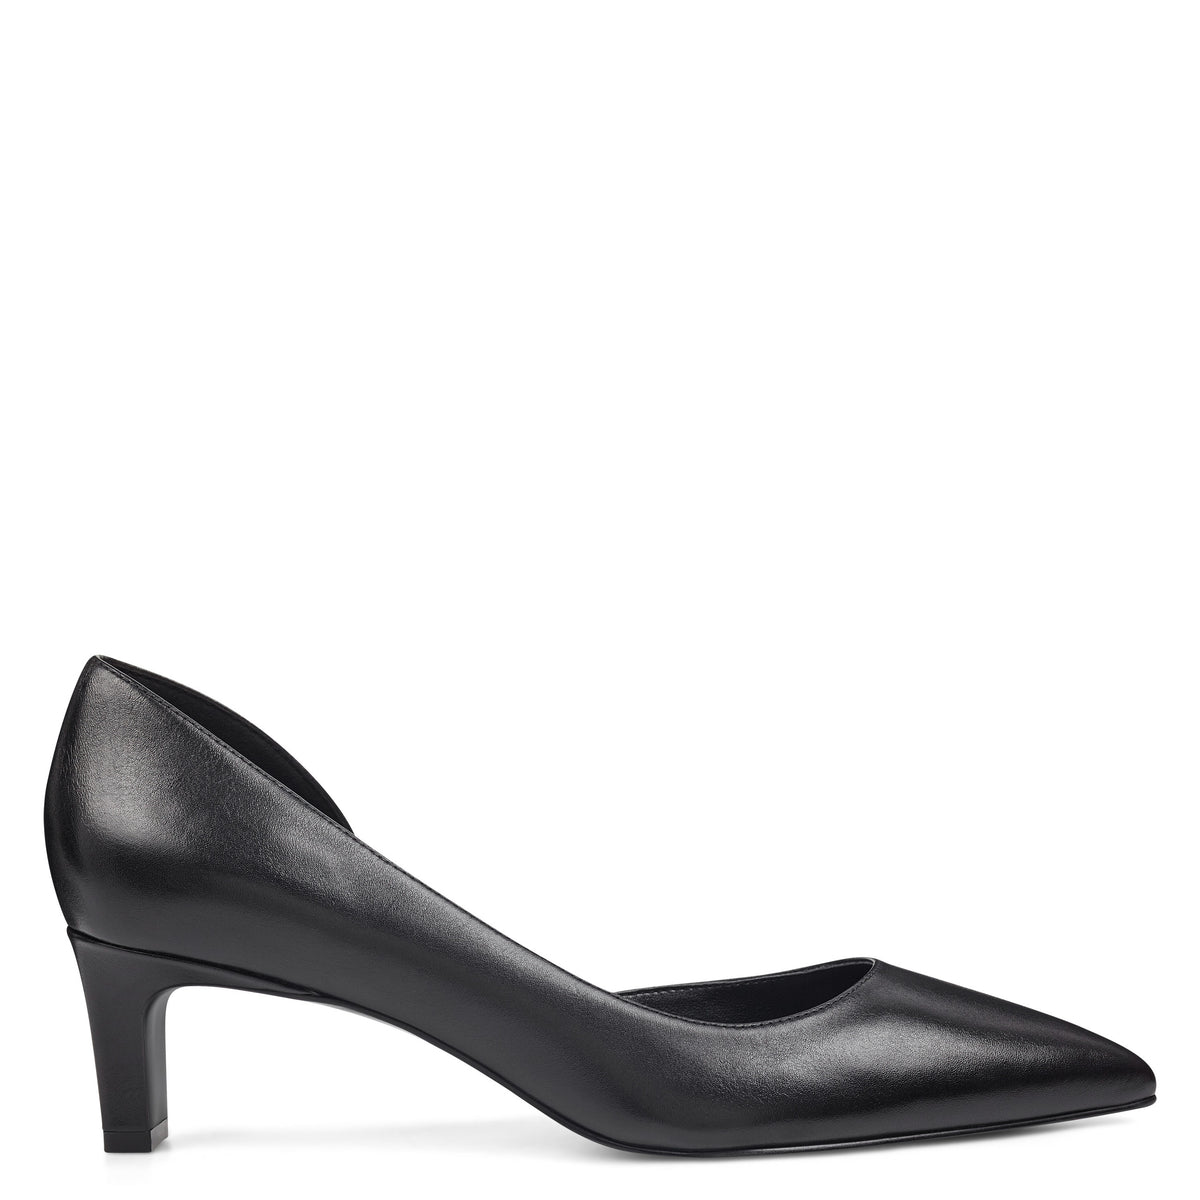 Adventure Square Heeled Pumps